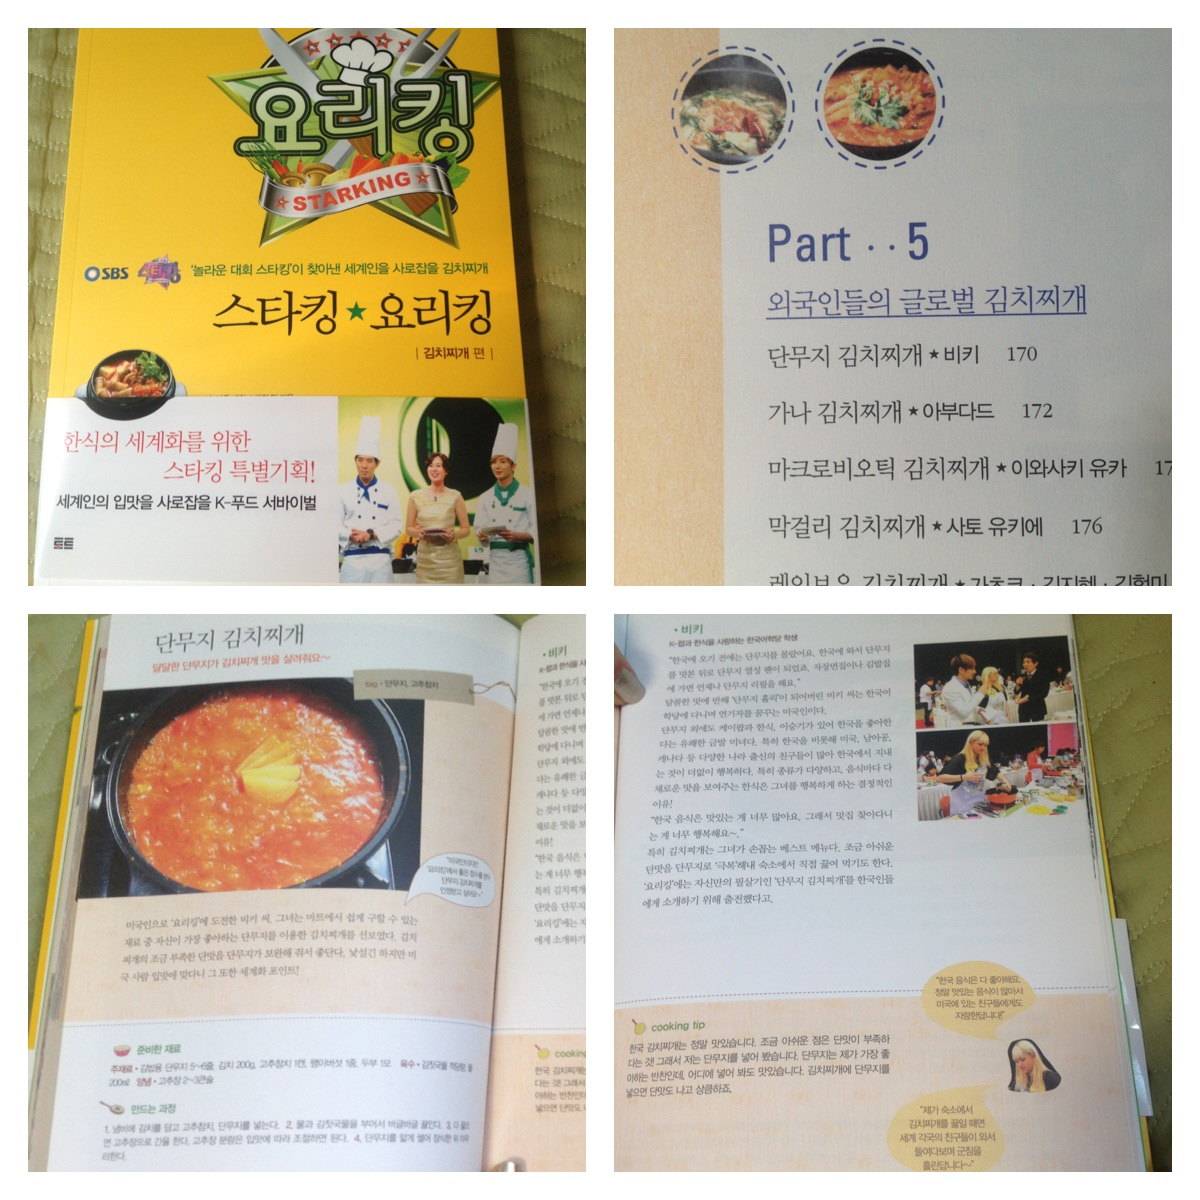 Star King Cooking King Cookbook 스타킹 요리킹